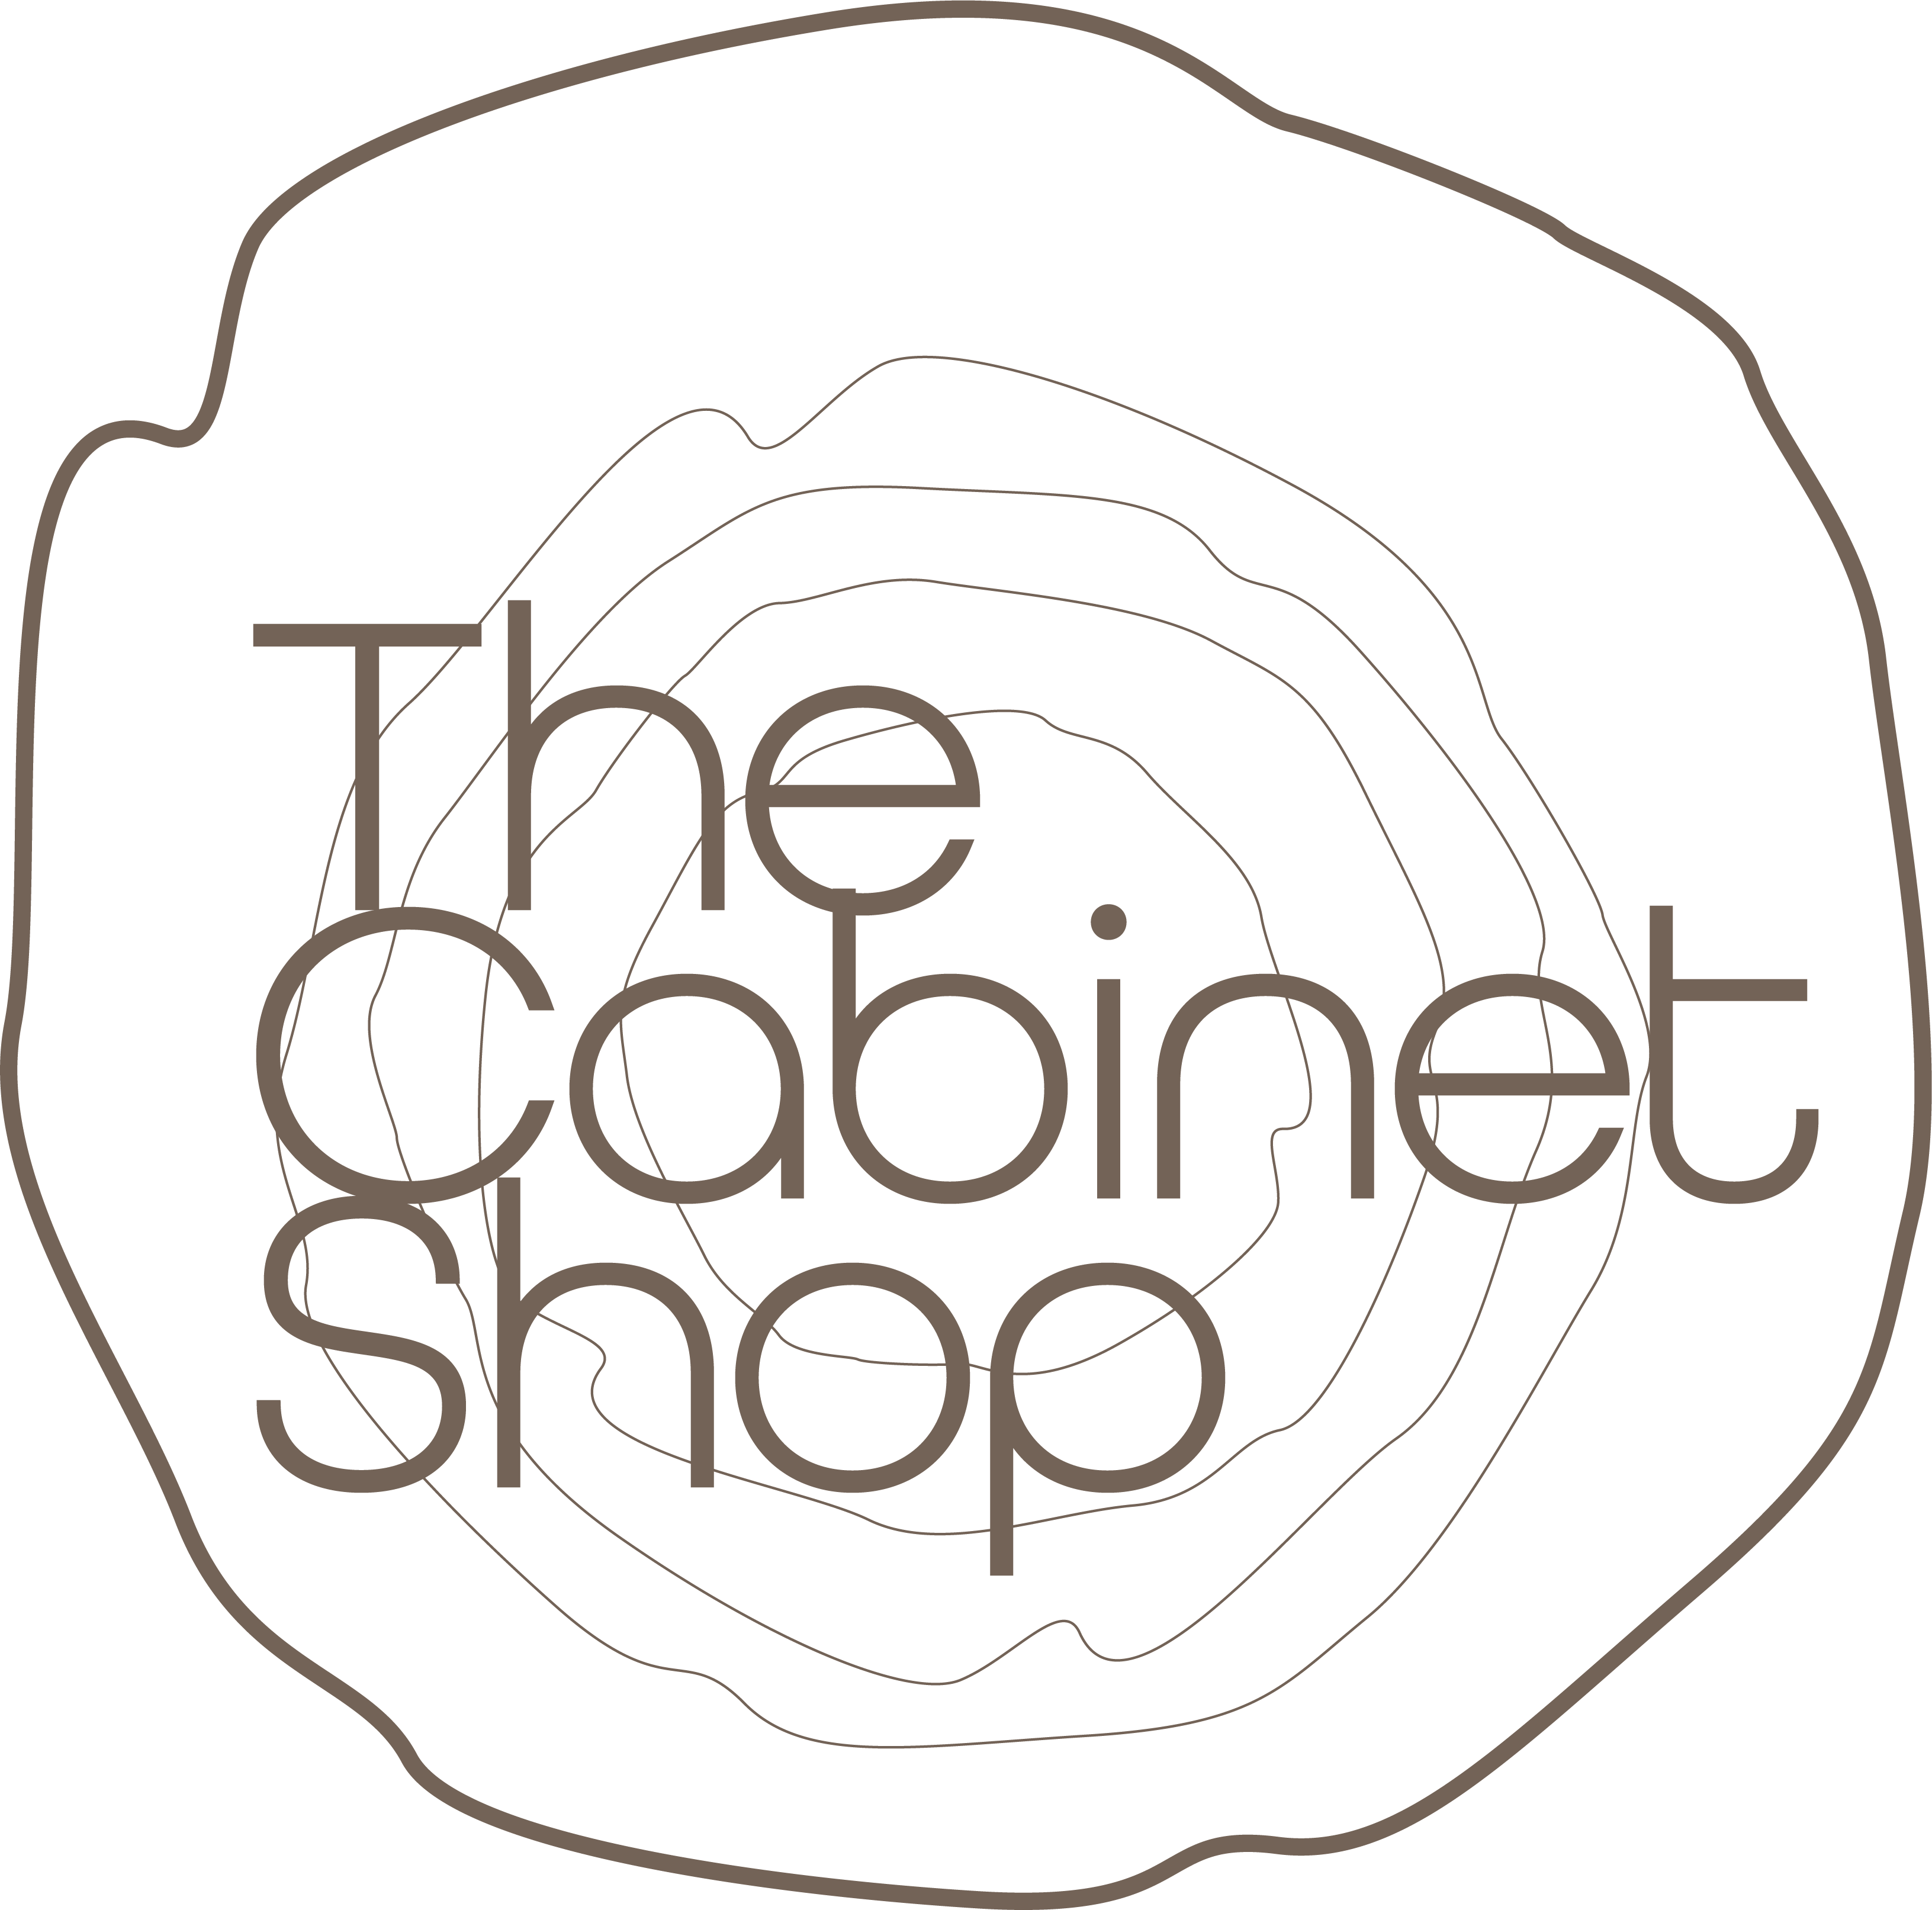 The Cabinet Shop logo